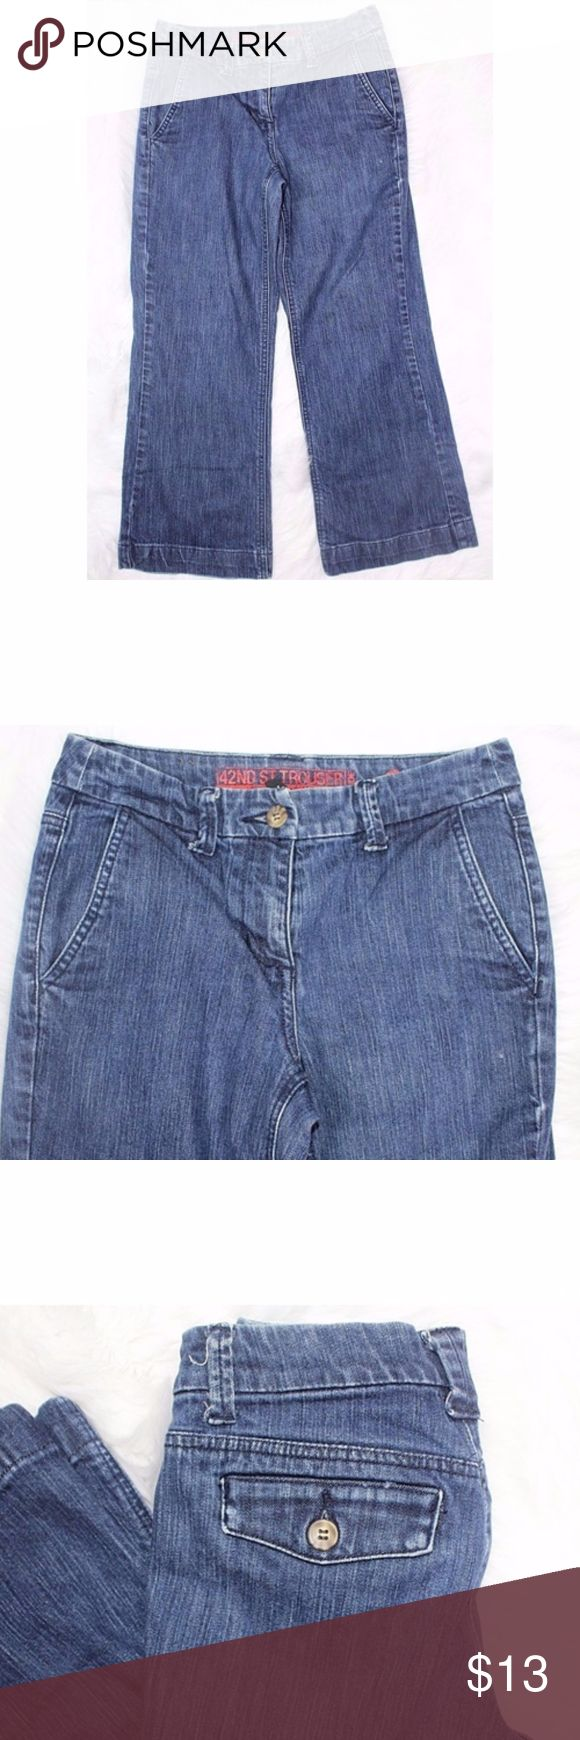 NEW YORK & COMPANY Womens Tall 42nd St Trouser Wid NEW YORK & COMPANY Womens Tall 42nd St Trouser Wide Flap Pockets Sz 2 D Crops Waist 14 1/2 Inches Inseam 25 Inches 98% Cotton 2% Spandex New York & Company Jeans Ankle & Cropped